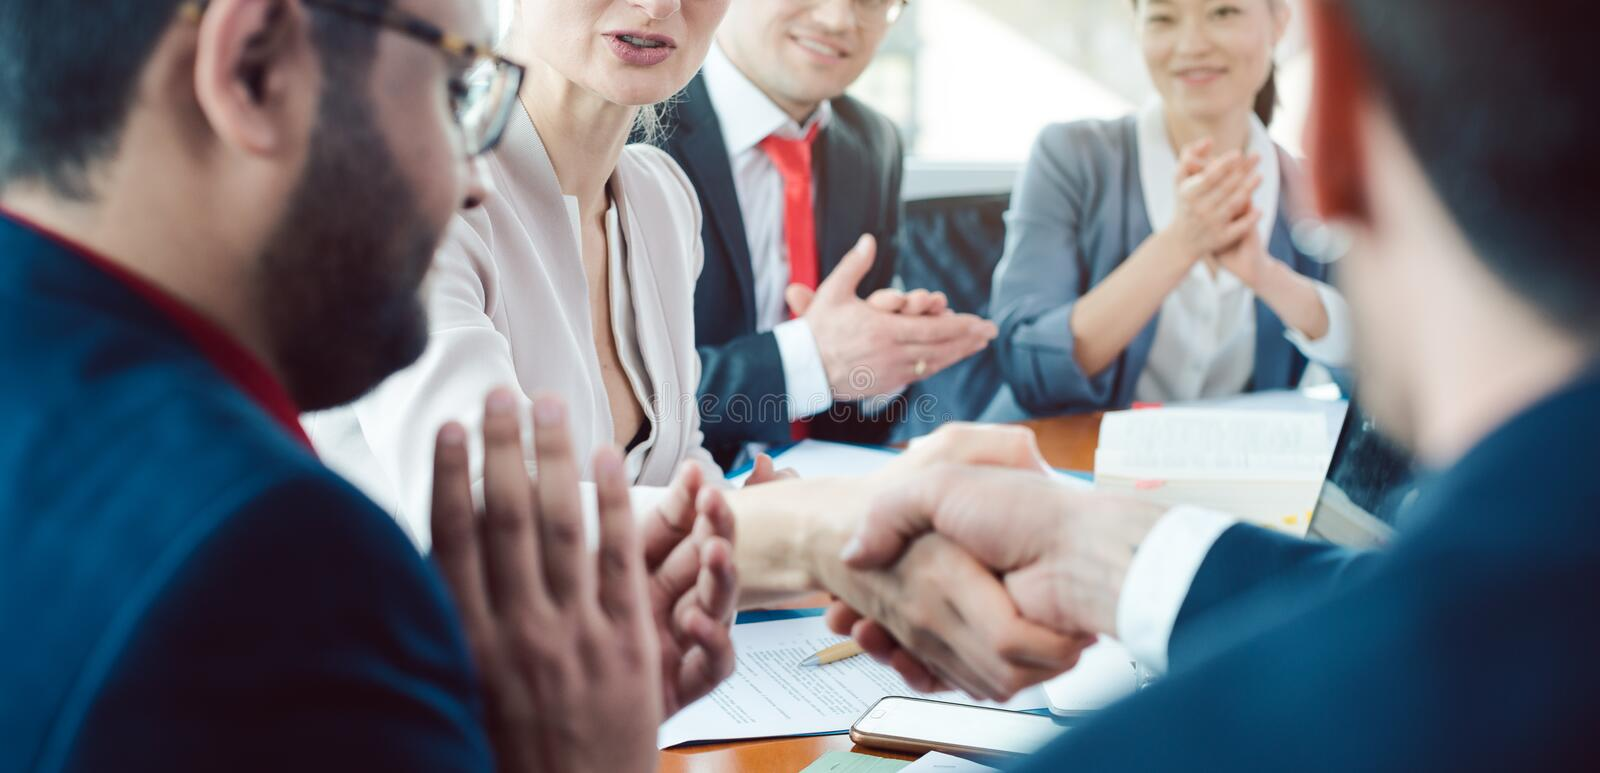 Team of business people negotiating an agreement closing the deal royalty free stock photo